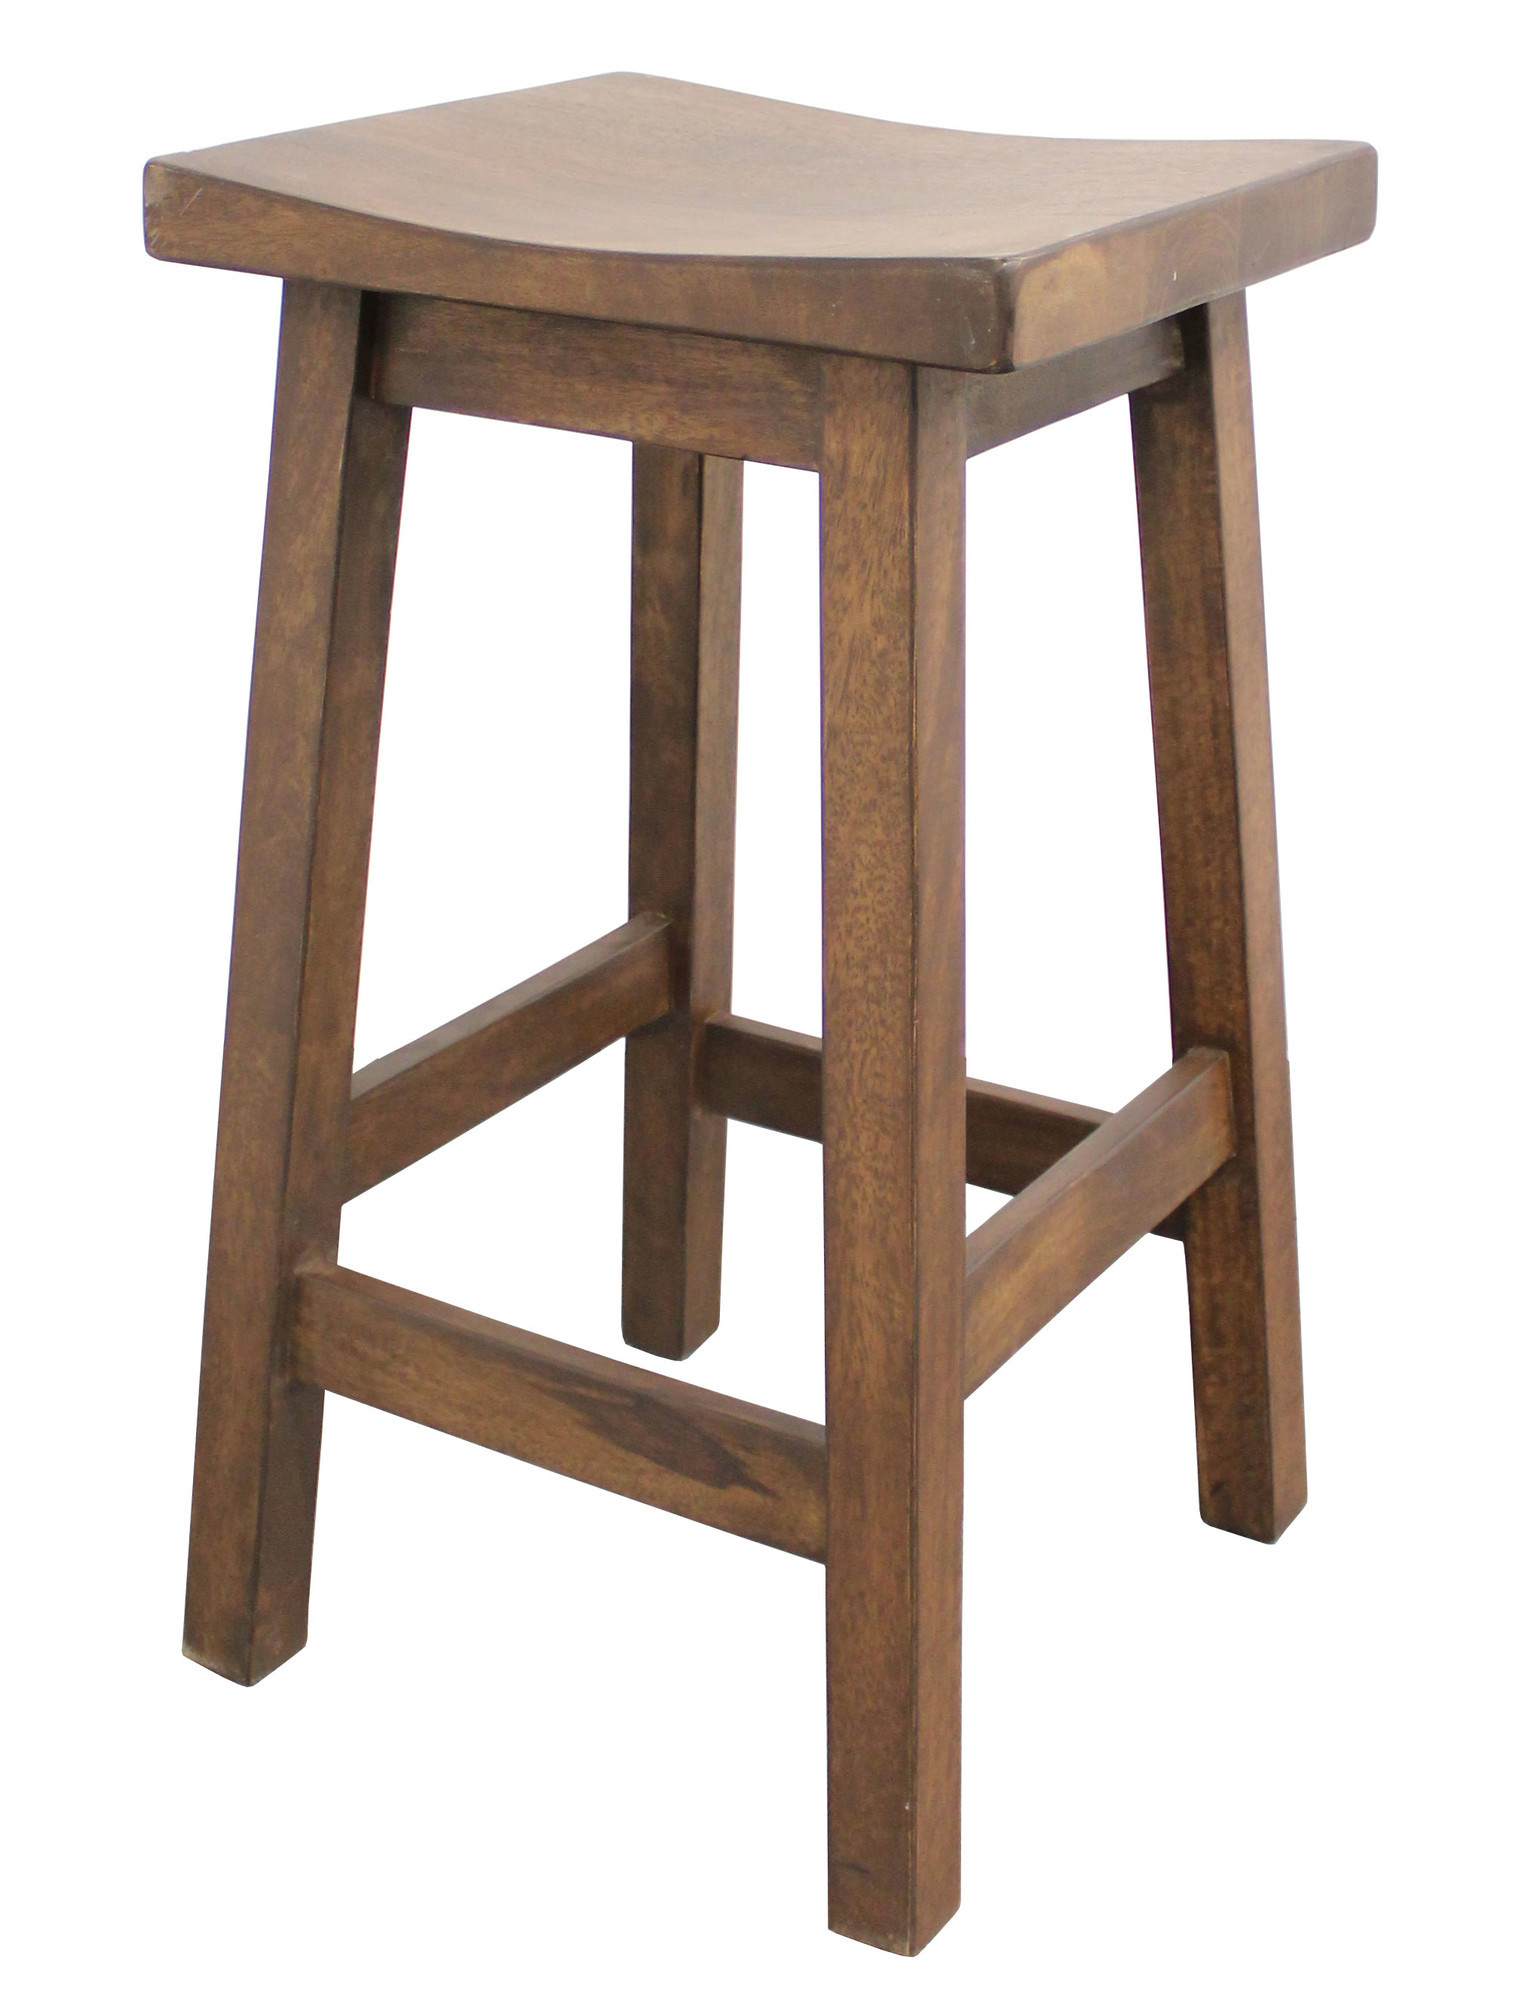 New the patriot wooden bar stool ebay